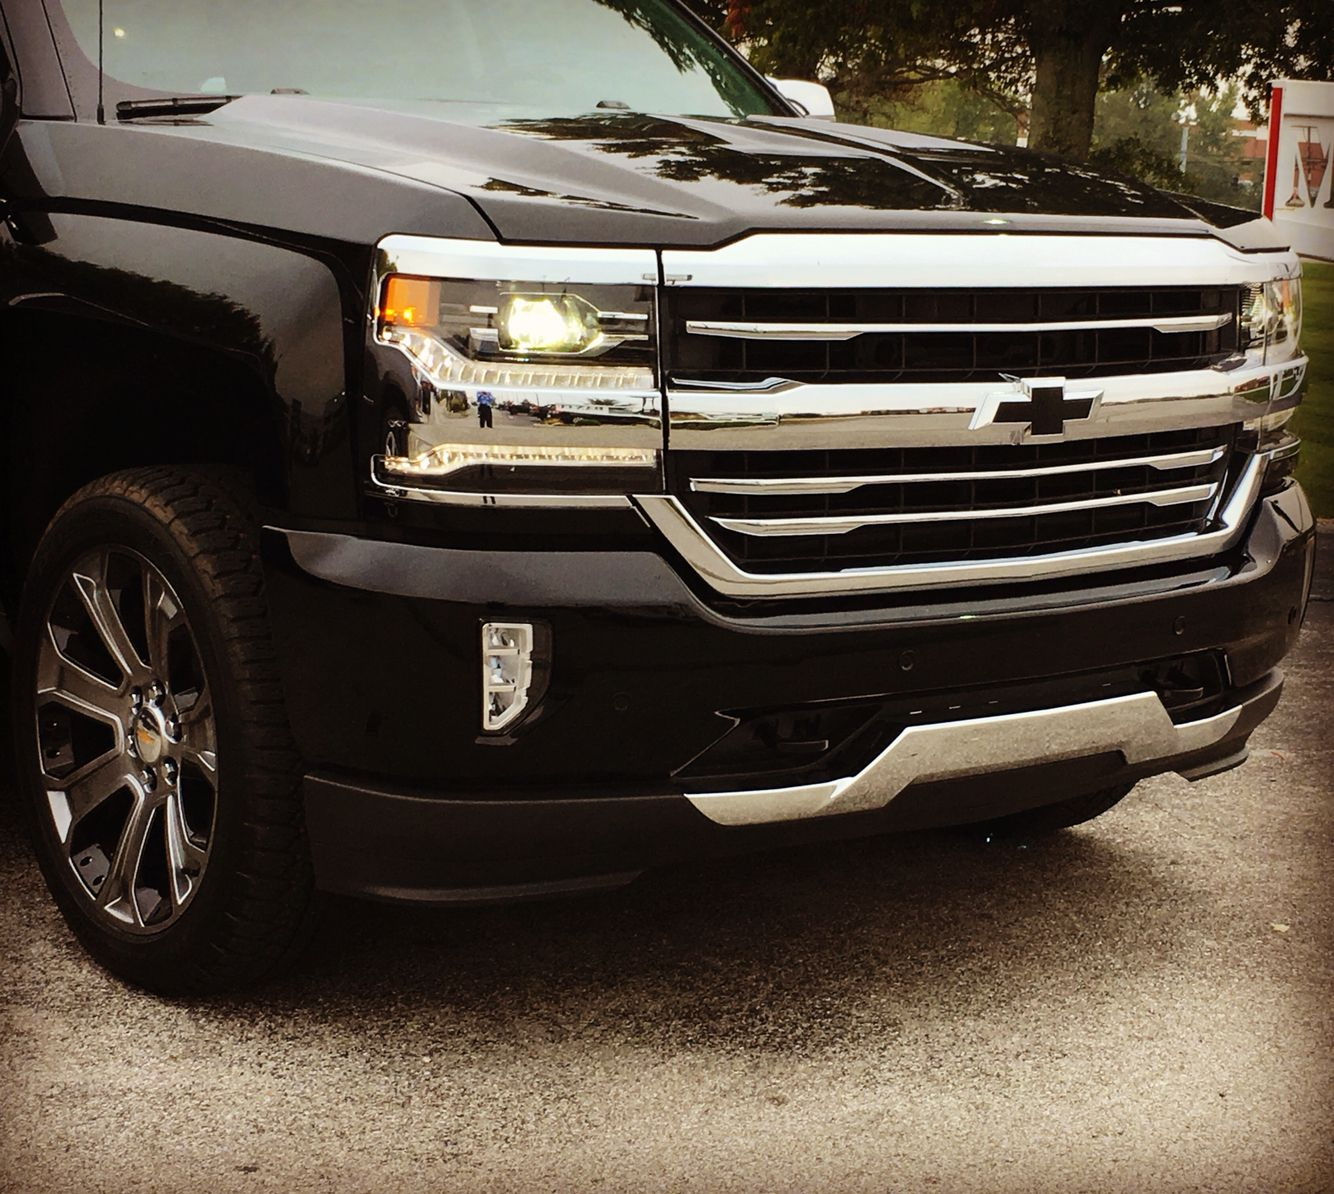 2017 Silverado High Country In A Formal Black Bow Tie Dancumminsdeal Silverado High Country Black Bow Silverado